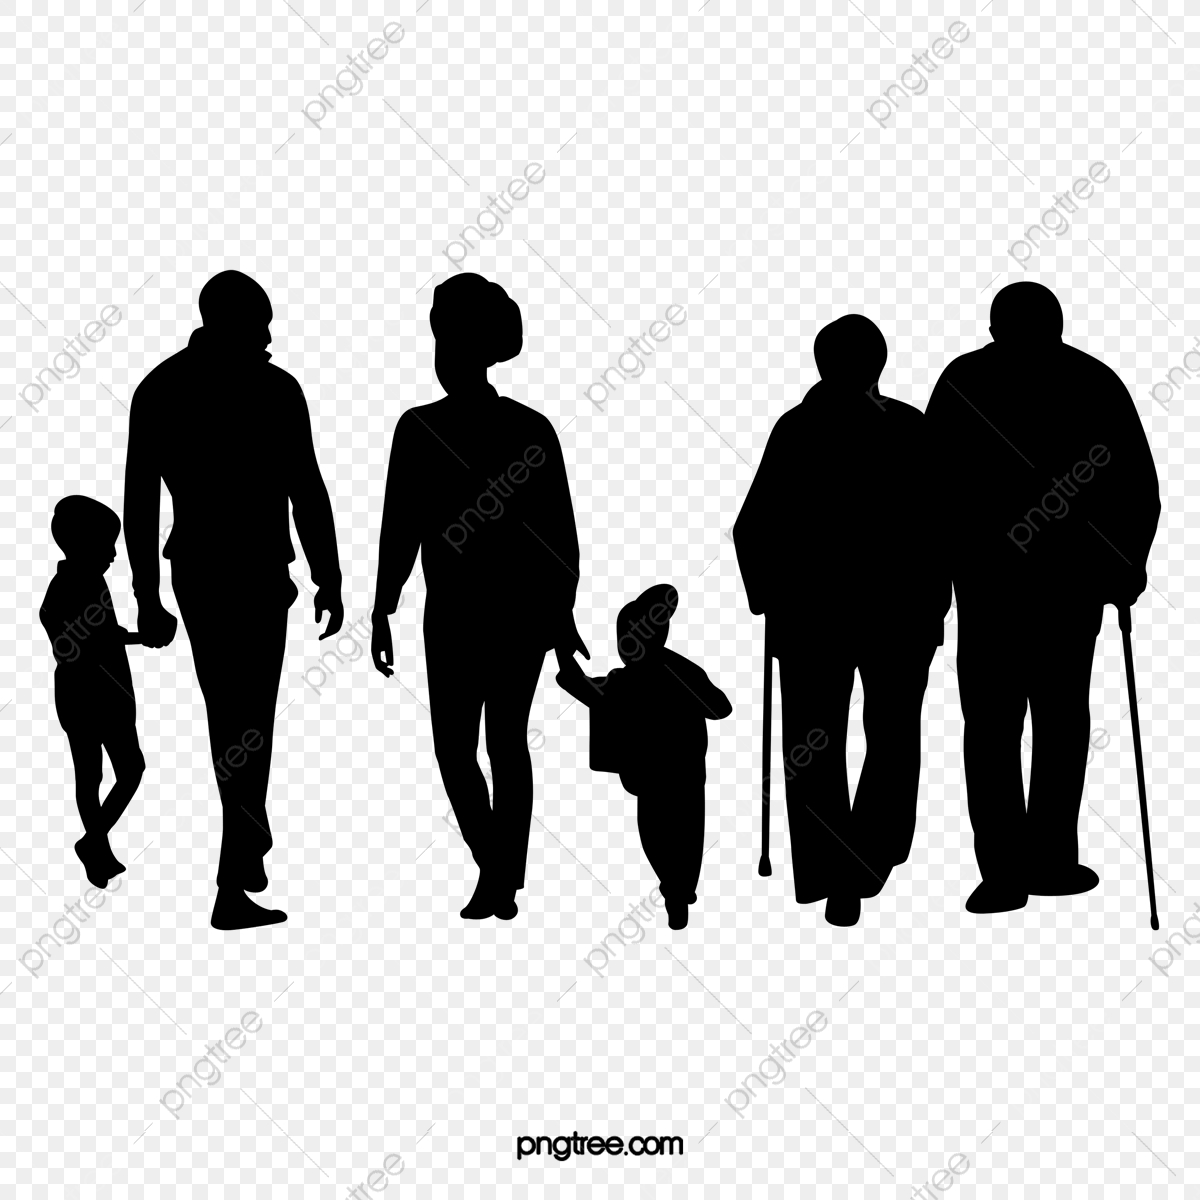 Black Family Silhouette Figures, Family Clipart, Silhouette.